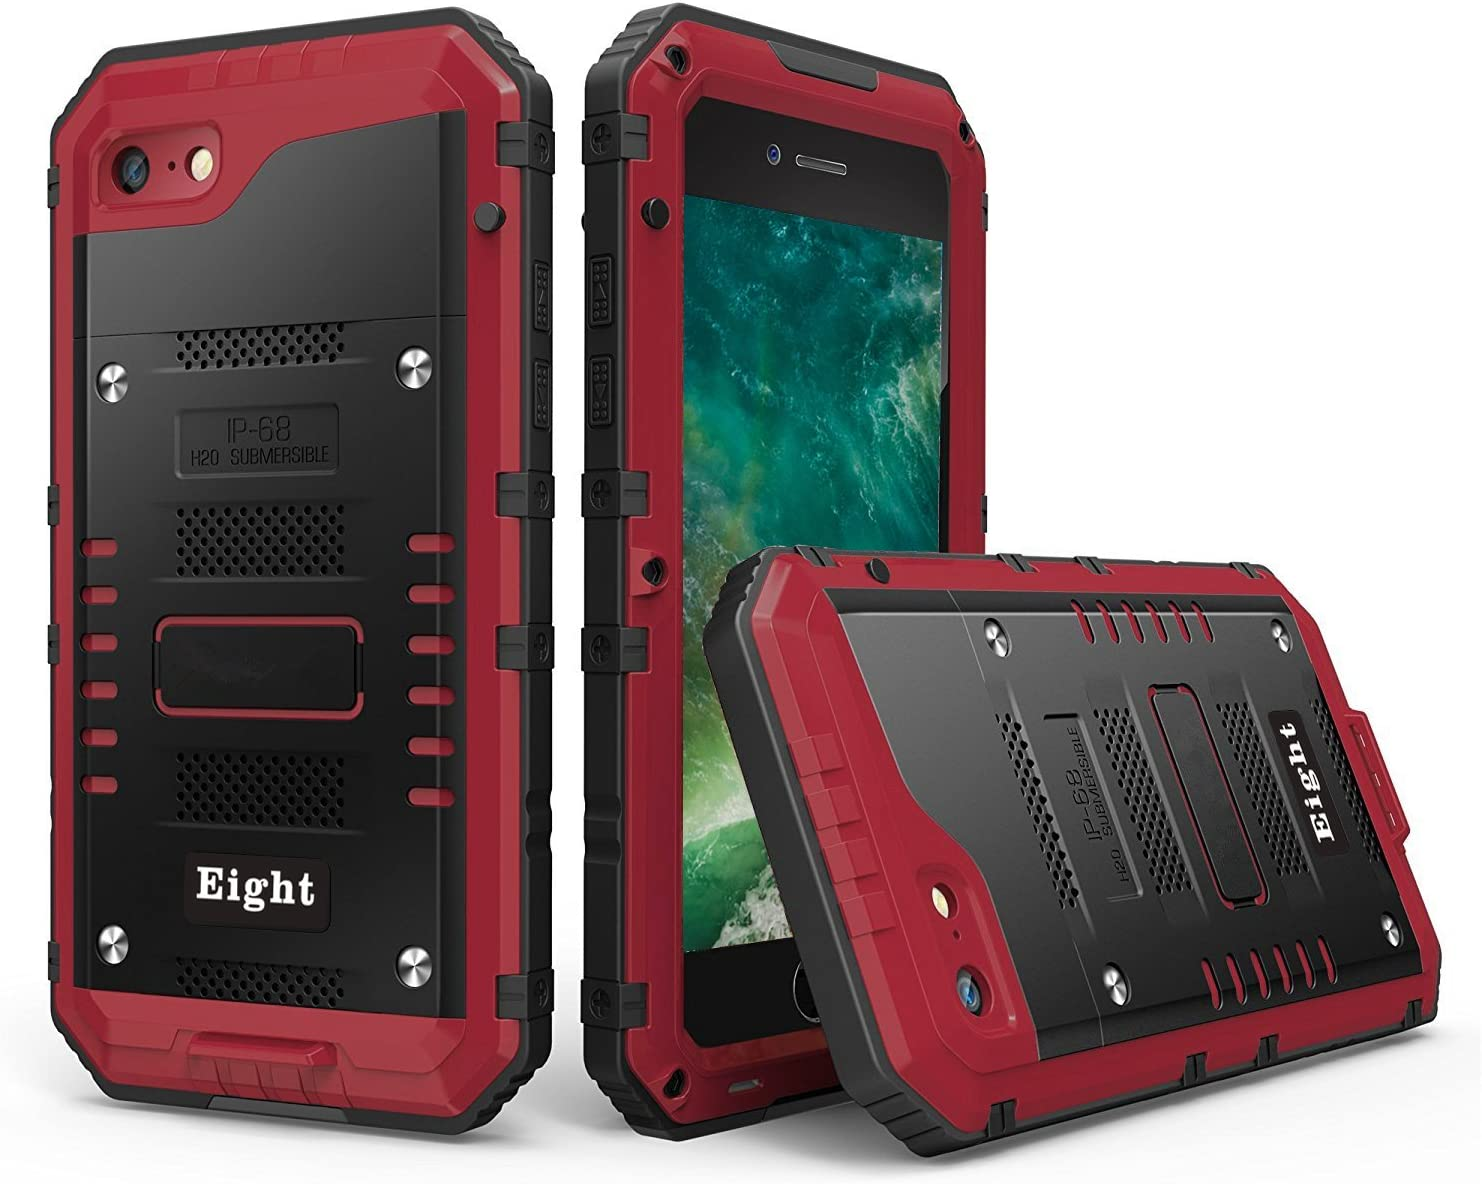 iPhone SE (2020) / 8 / 7 Waterproof Case Heavy Duty with Built-in Screen Full Body Protective Shockproof Drop proof Hybrid Hard Cover Military Outdoor Sport for Apple iPhone SE (2020) / 8 / 7 (Red)